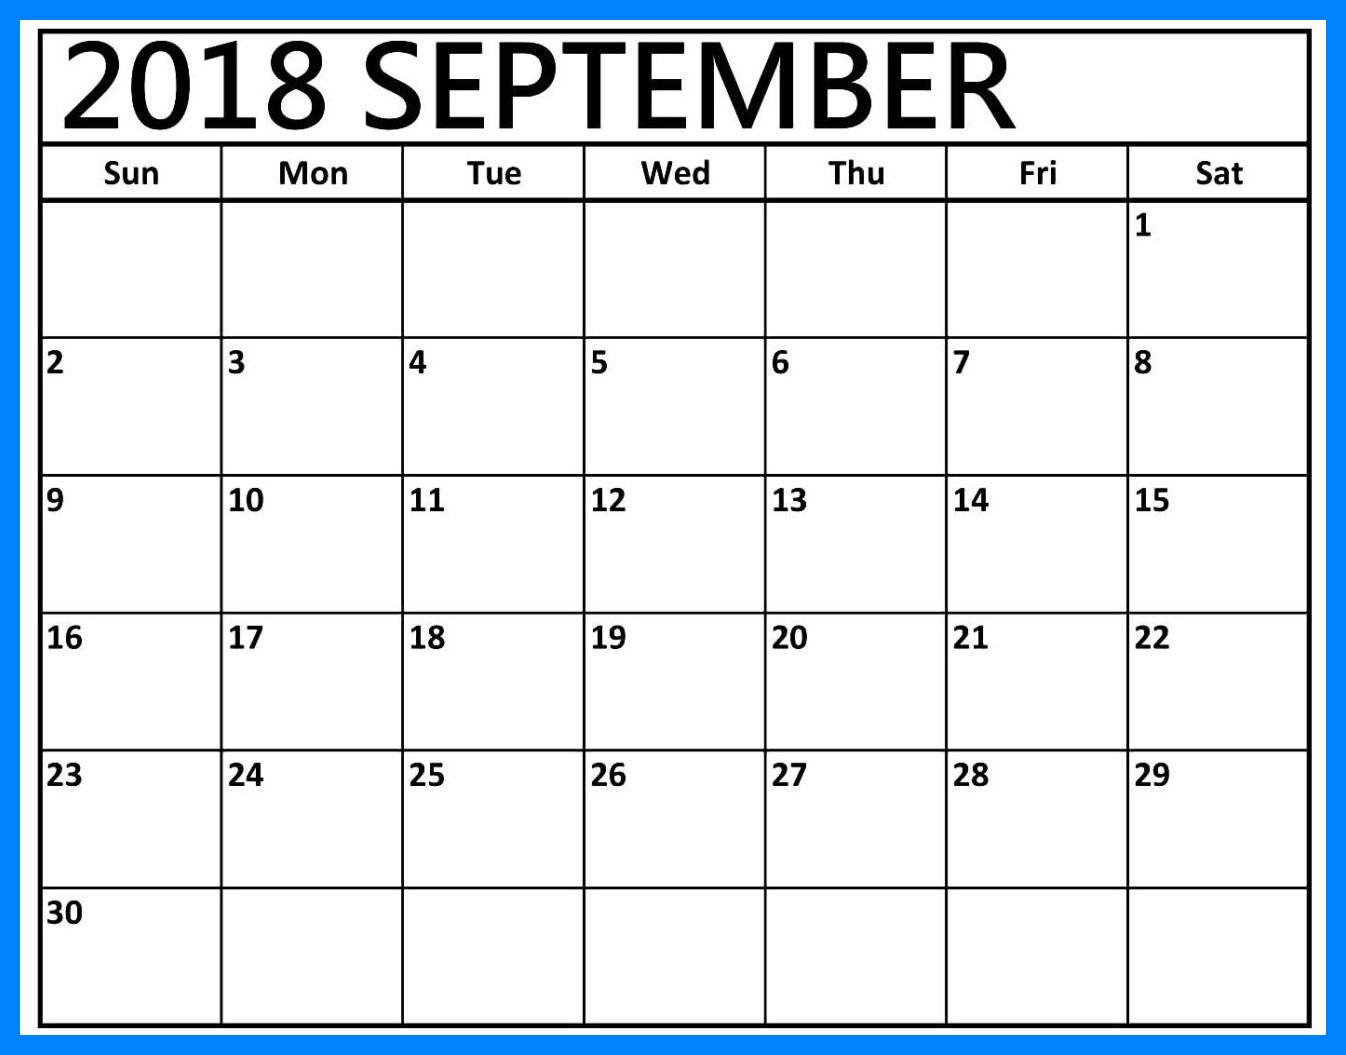 September 2018 Calendar Editable Holidays